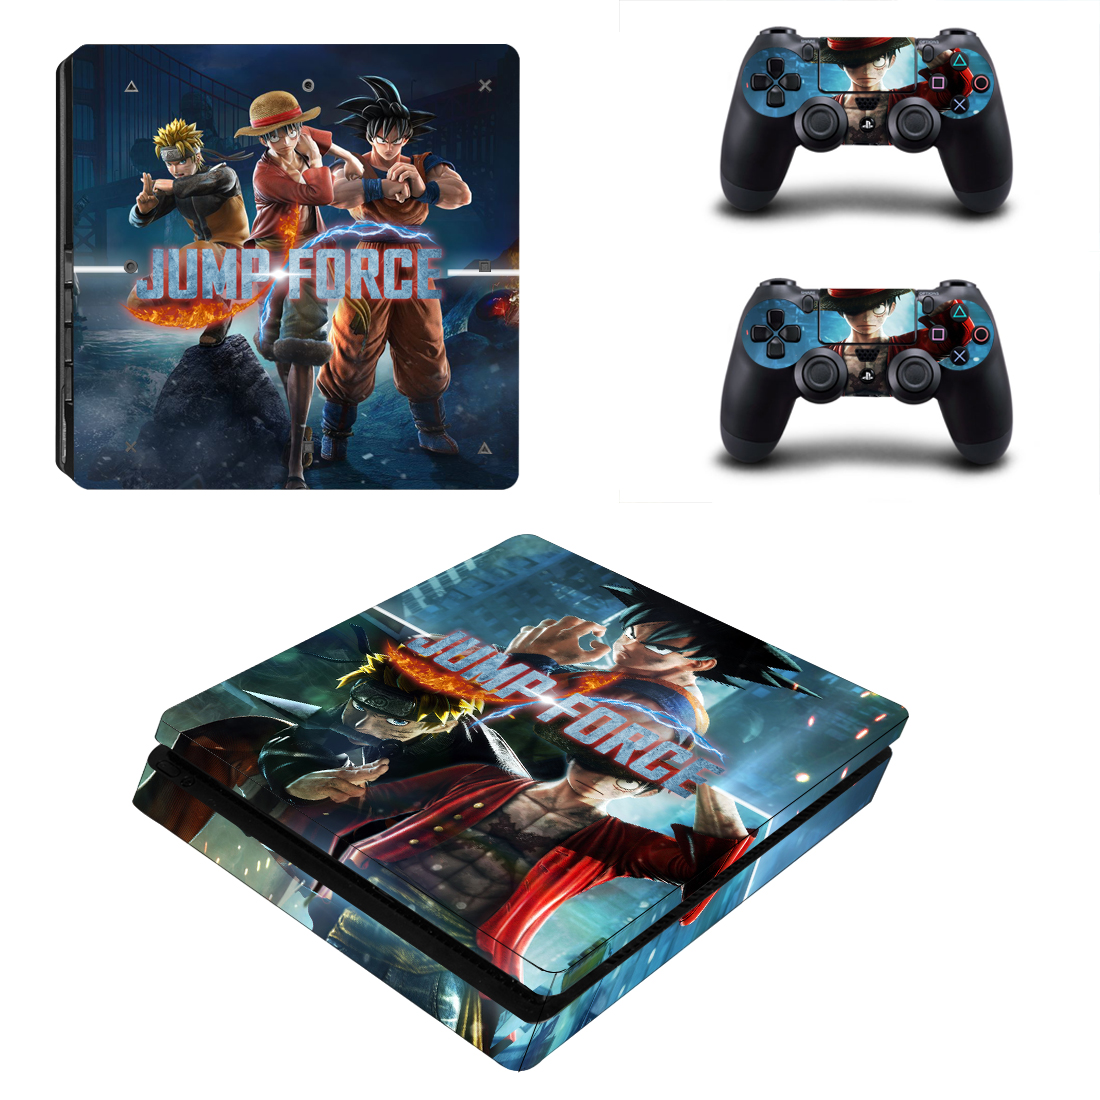 Jump Force Style Skin Sticker for PS4 Slim Console & Controllers Decal Vinyl Skins Cover Game Accessories YSP4S-3412